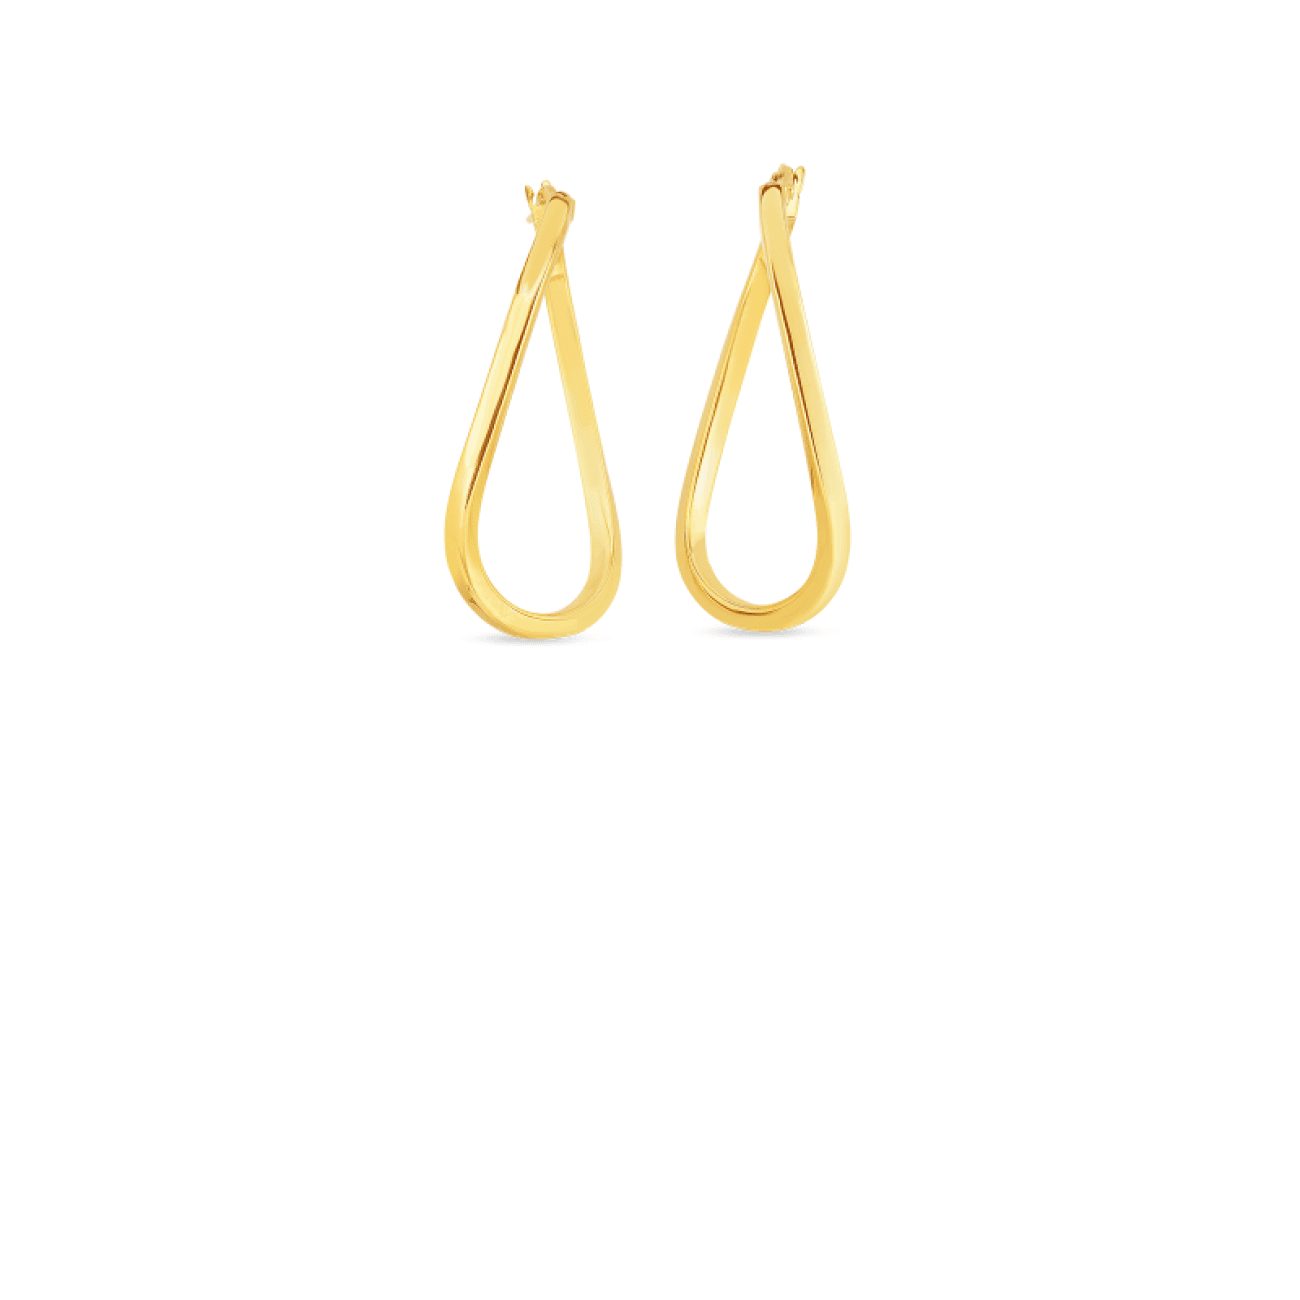 Roberto Coin Jewelry - 18KT GOLD TWIST OVAL HOOP EARRINGS | Manfredi Jewels